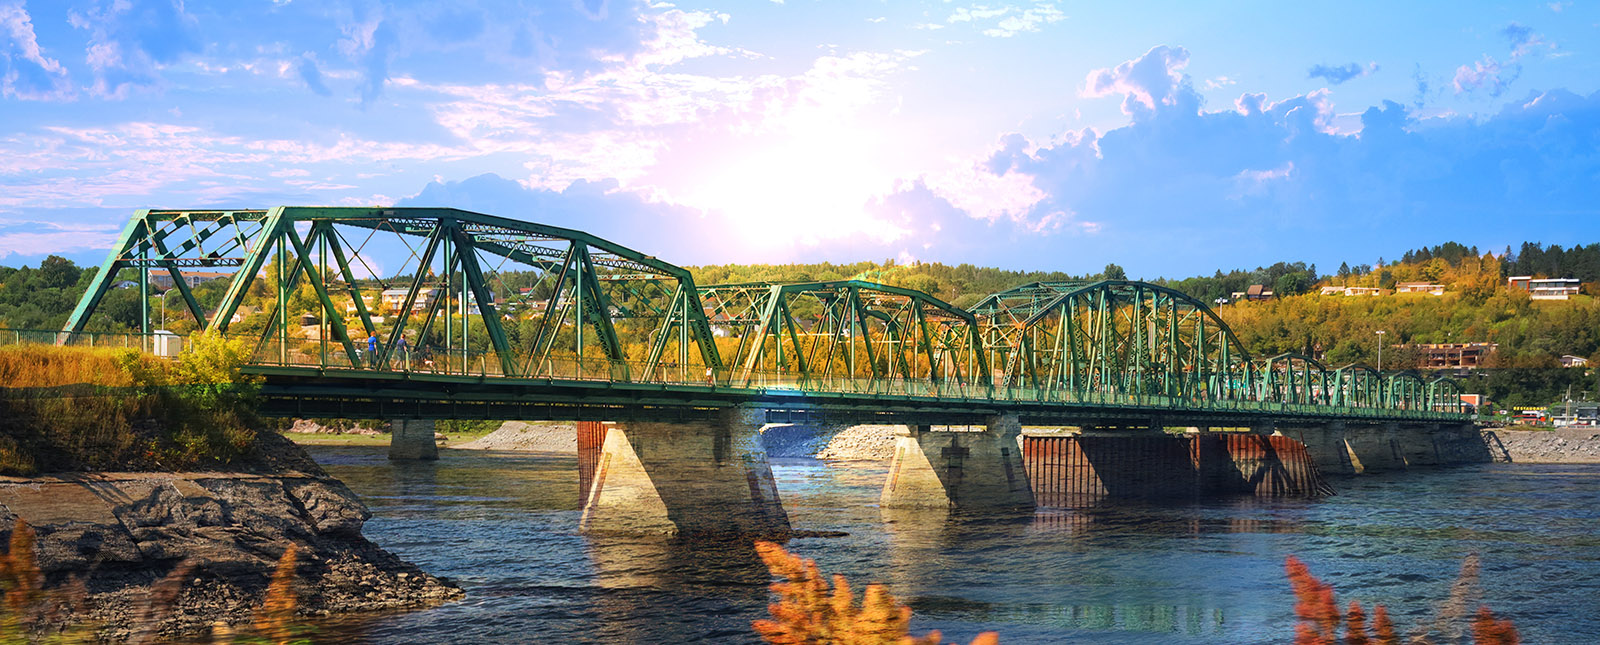 Old Saguenay Bridge and River - Stock Photos, Pictures & Images